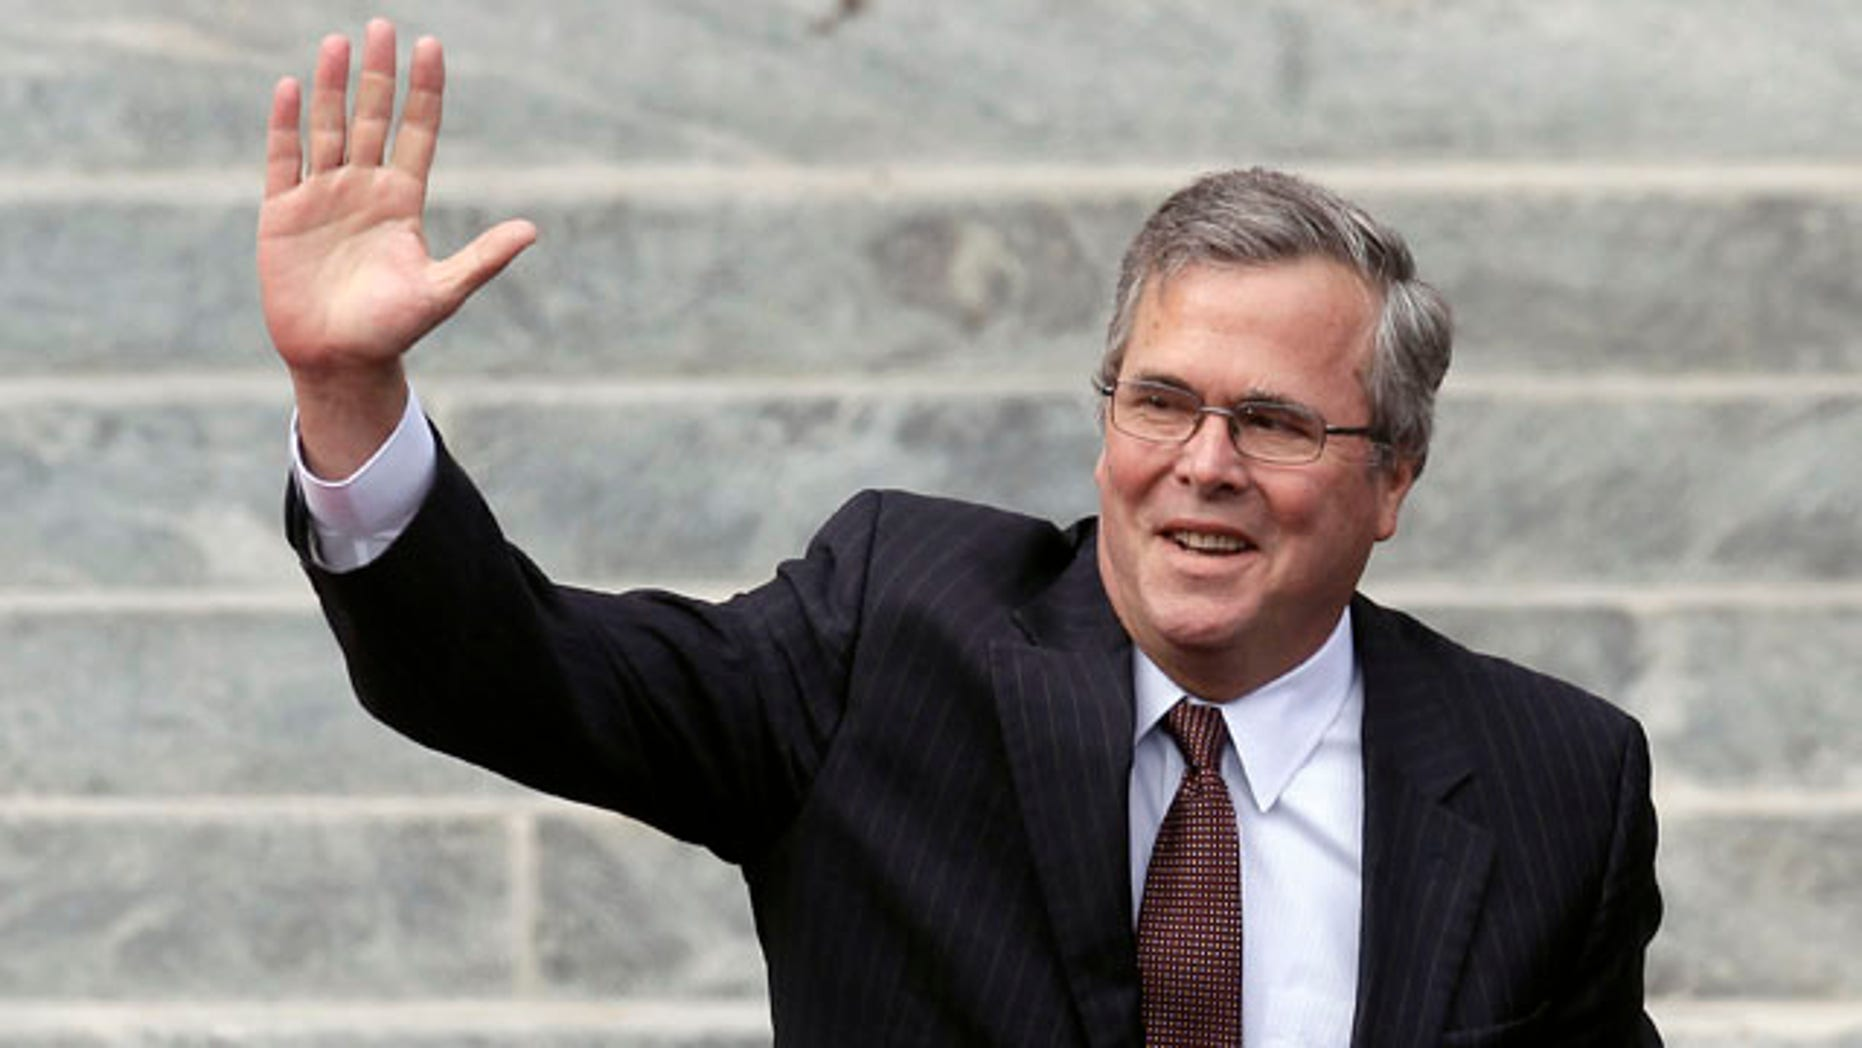 Former Florida Gov. Jeb Bush waves as he is introduced to the crowd during inauguration ceremonies for Republican Rick Scott Tuesday, Jan. 4, 2011 outside the Old Capitol in Tallahassee, Fla.  (AP Photo/Chris O'Meara)